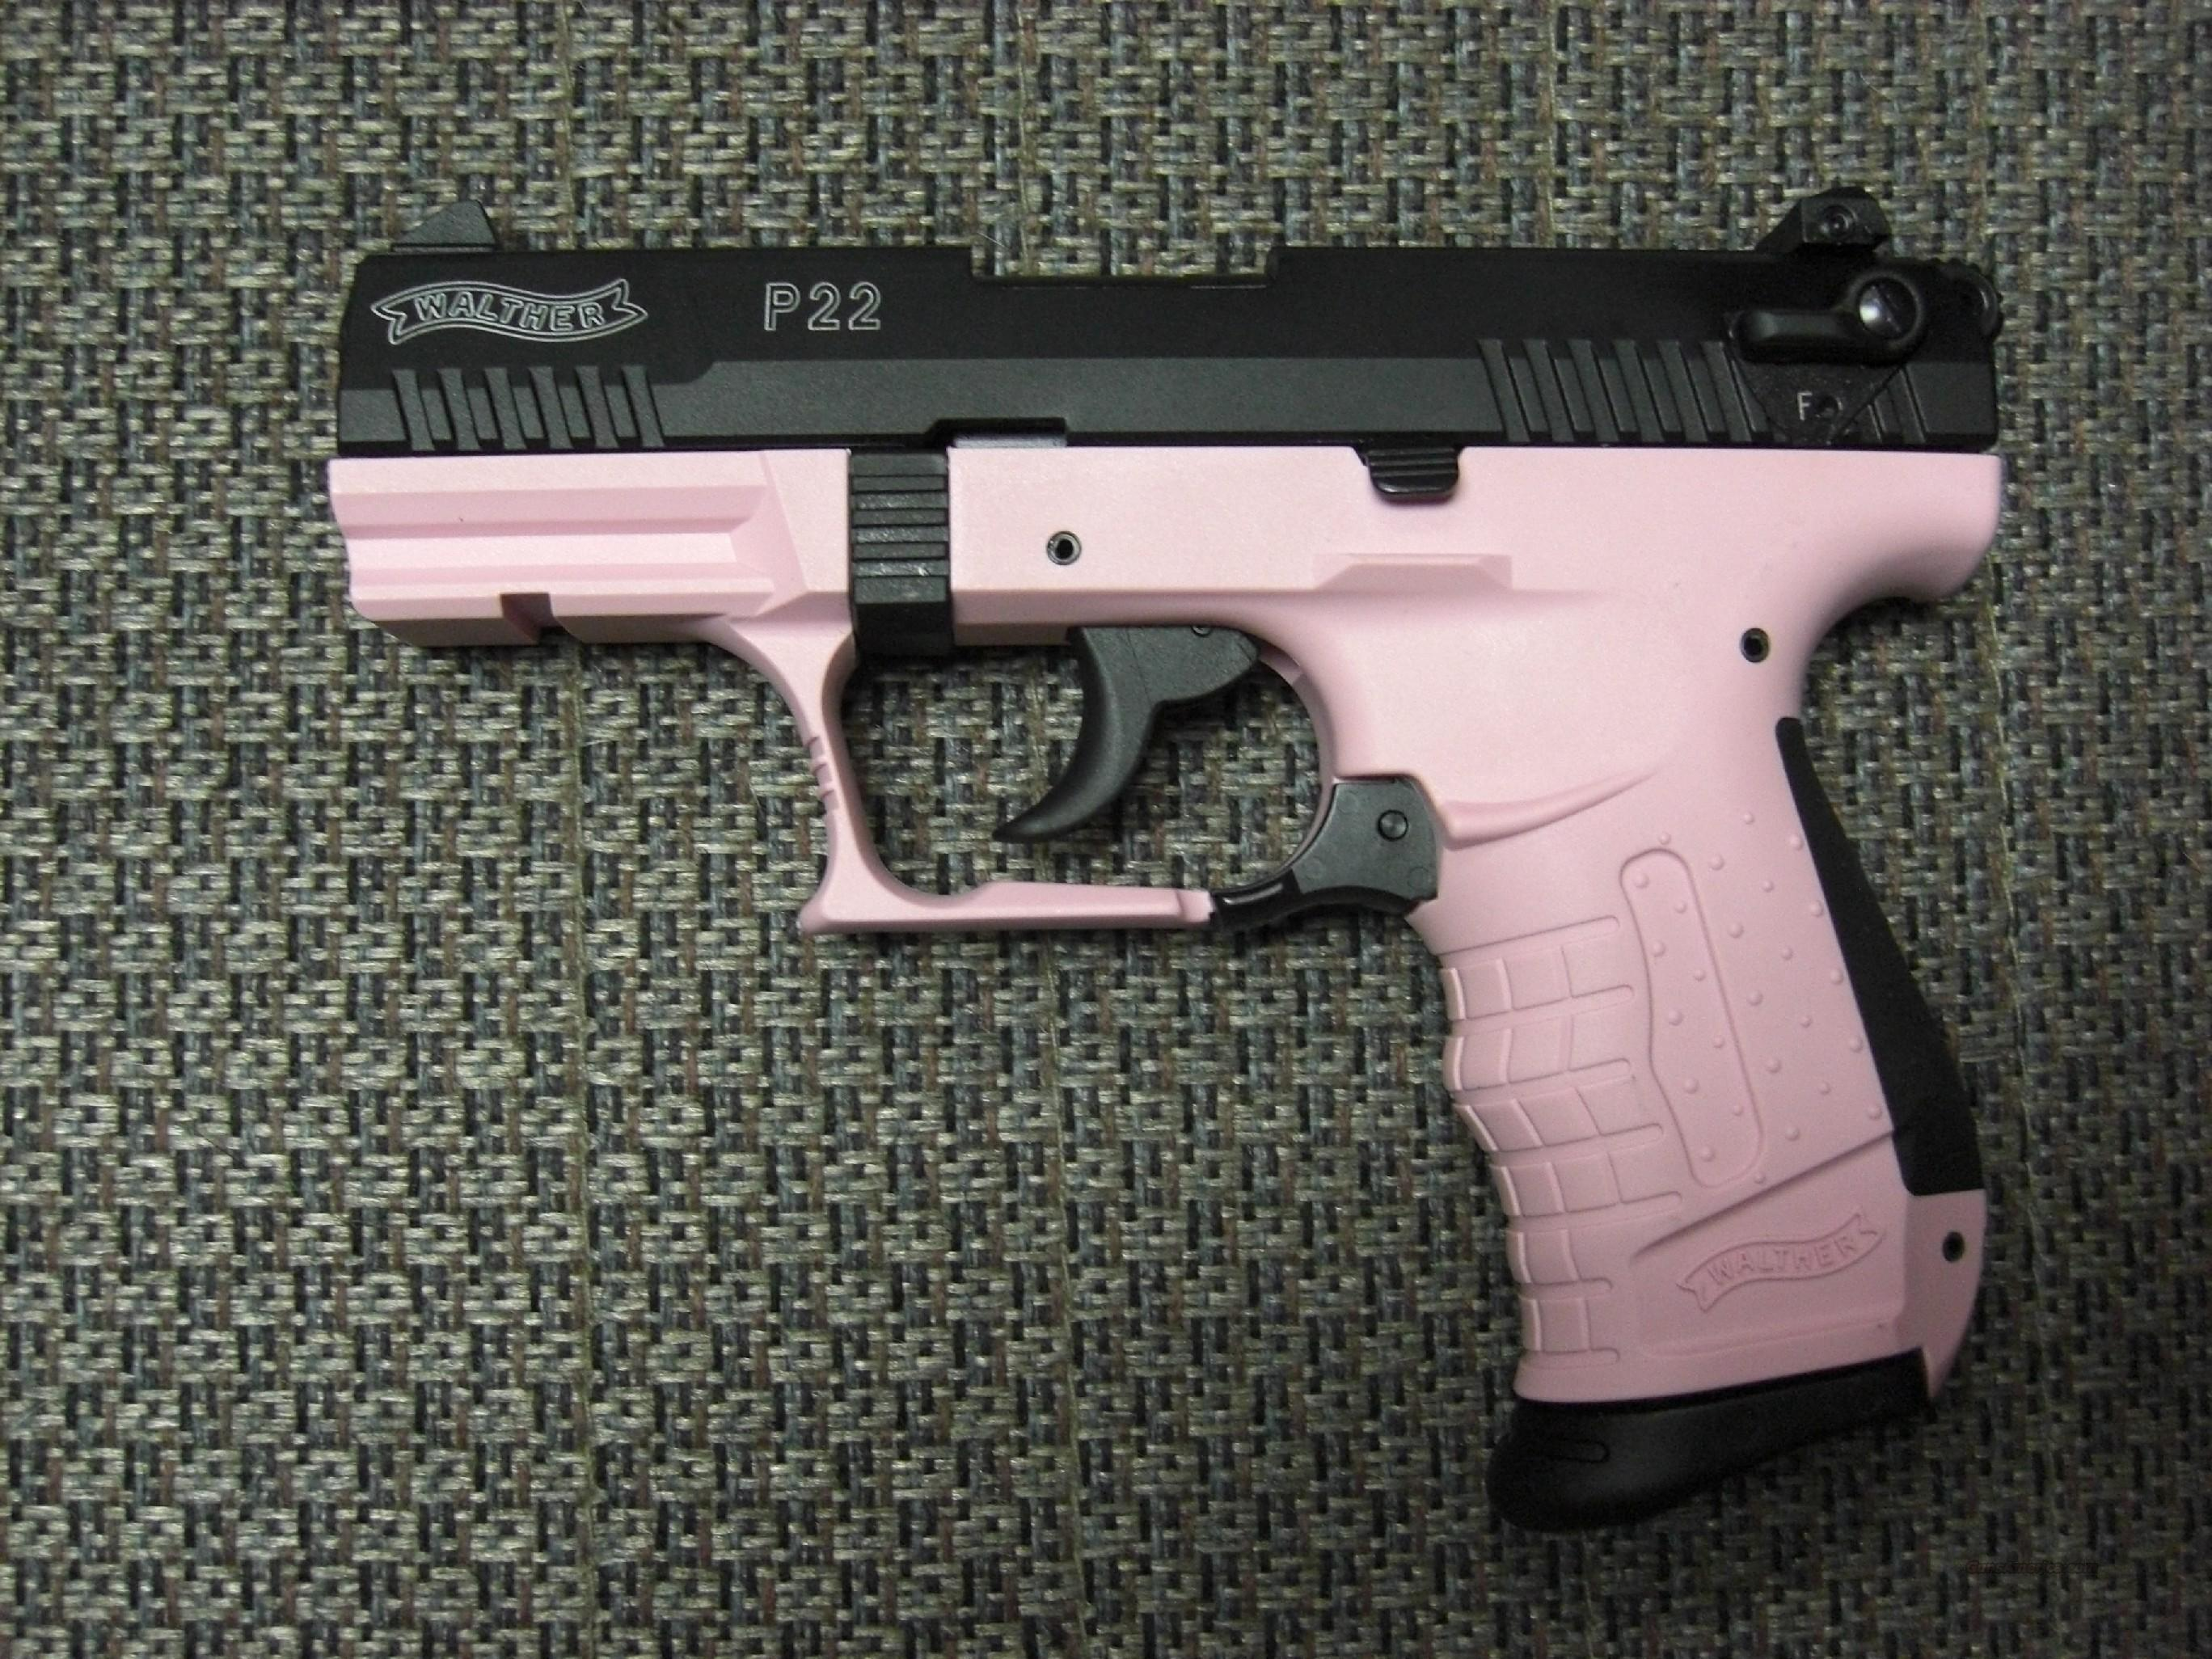 P22 (3.4 inch barrel, black with pink)  Guns > Pistols > Walther Pistols > Post WWII > Target Pistols